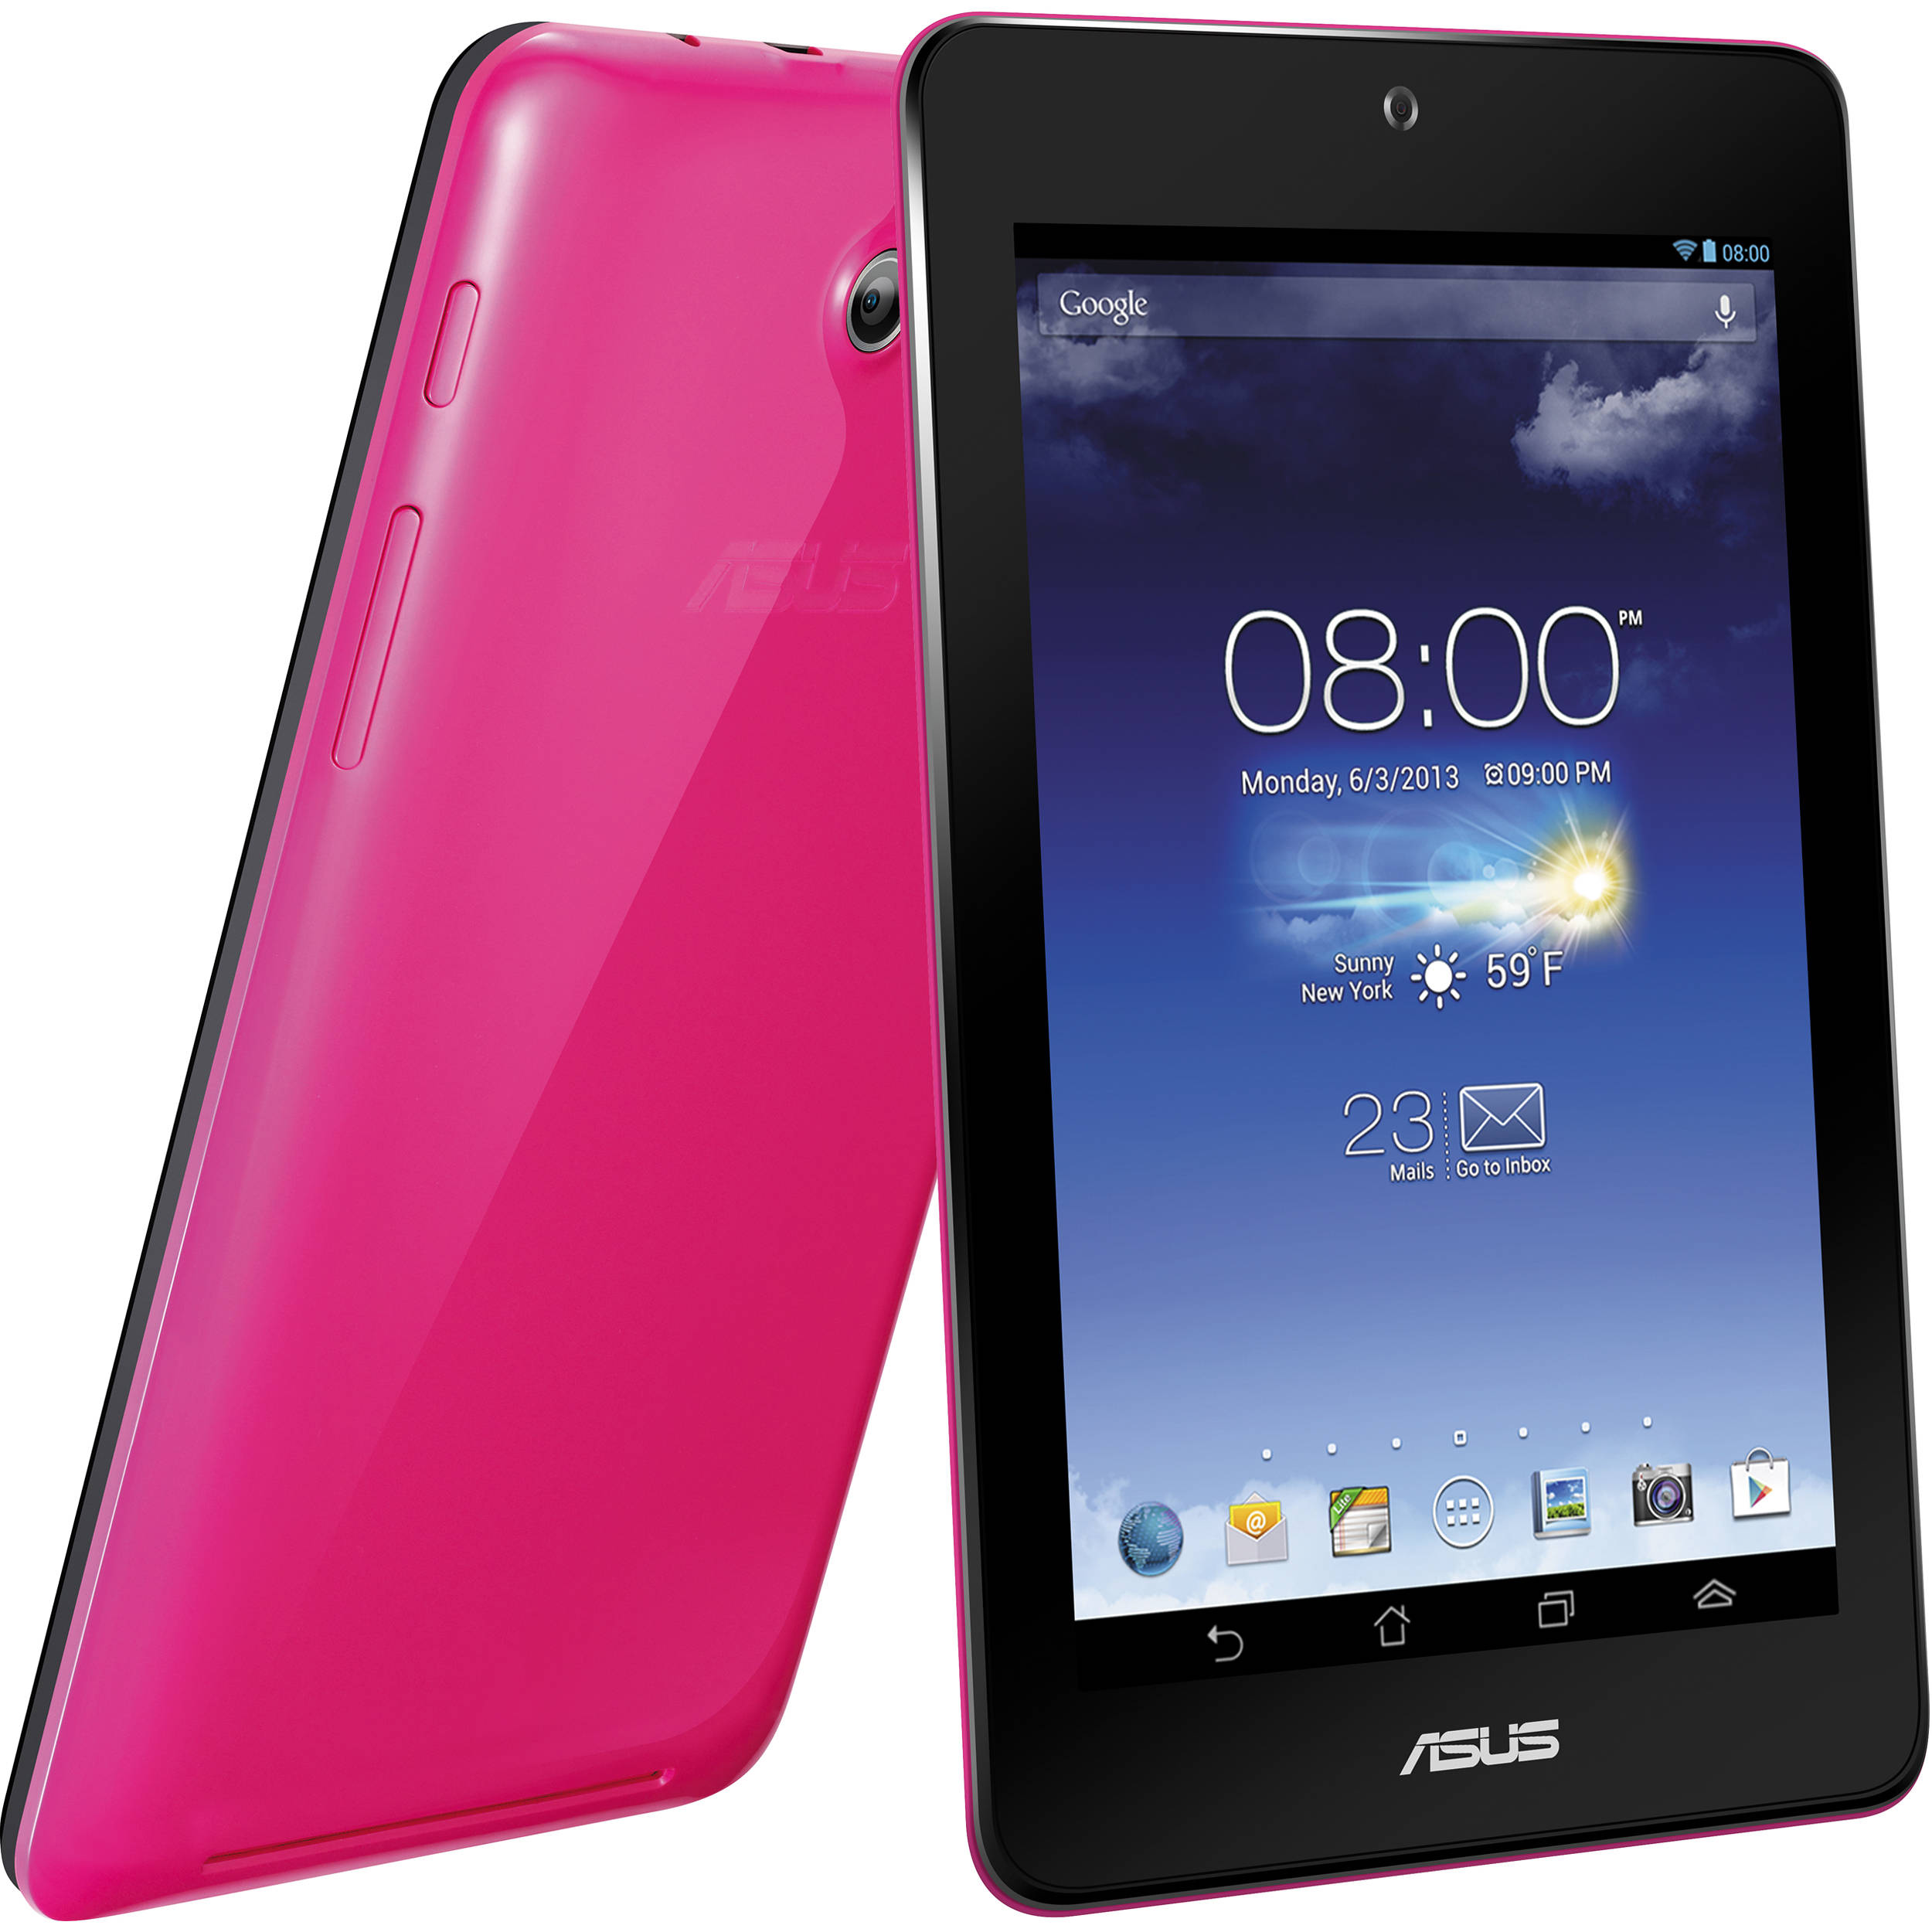 ASUS 16GB MeMO Pad HD 7 Tablet (Pink) ME173X-A1-PK B&H Photo